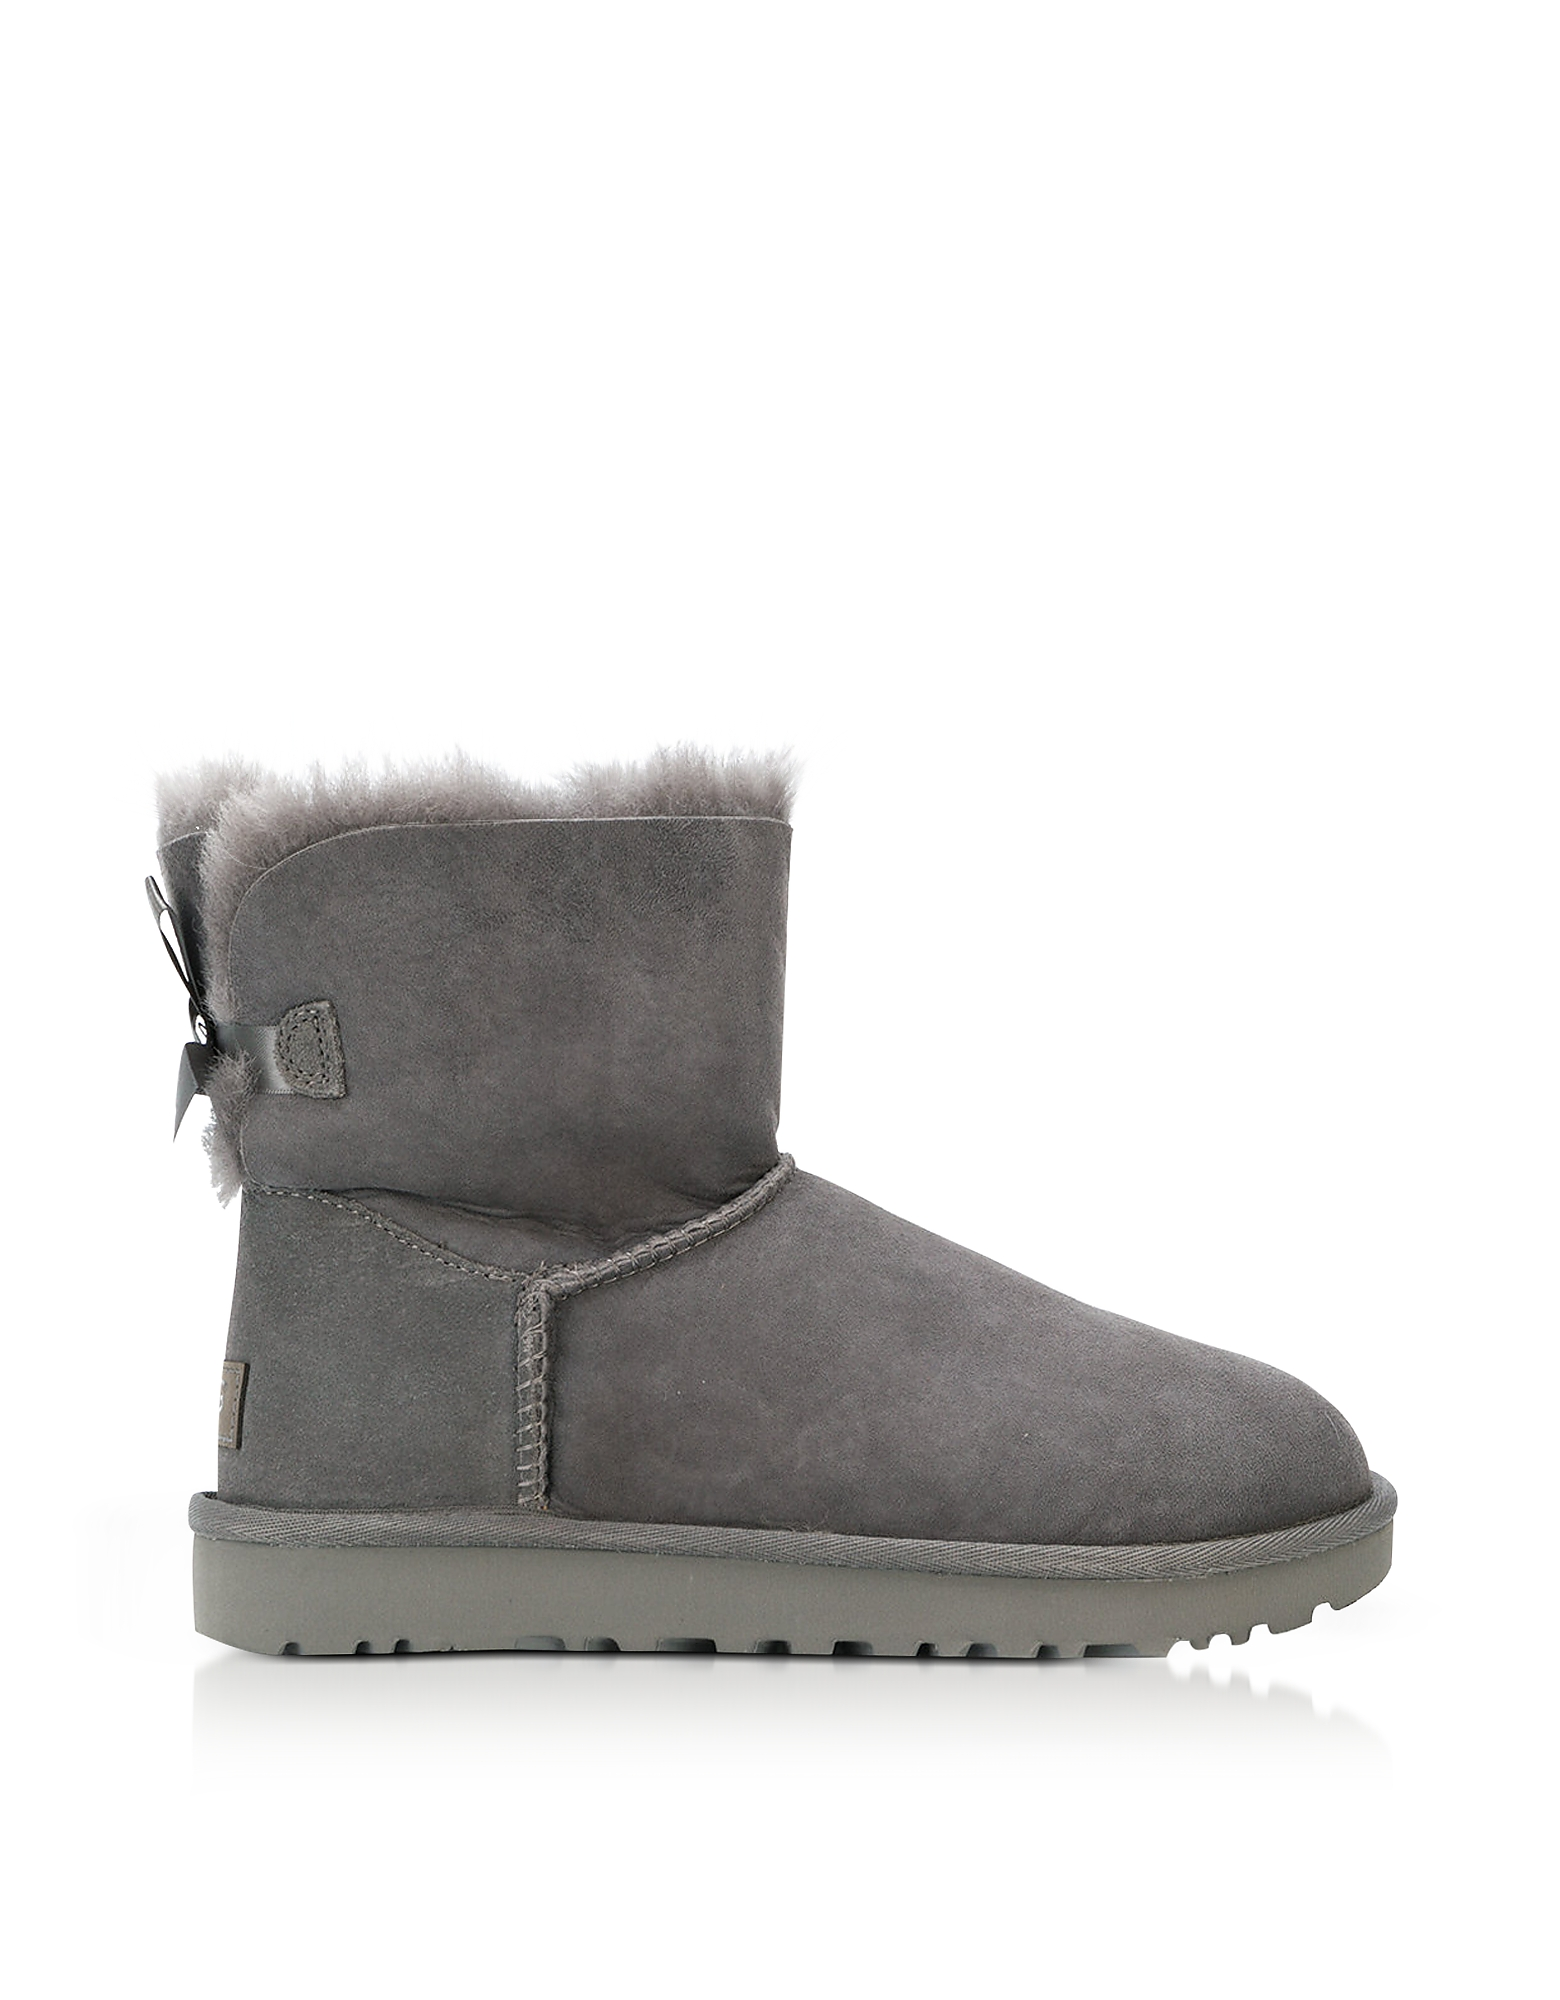 Mini Bailey Bow II Boots in Montone Gray